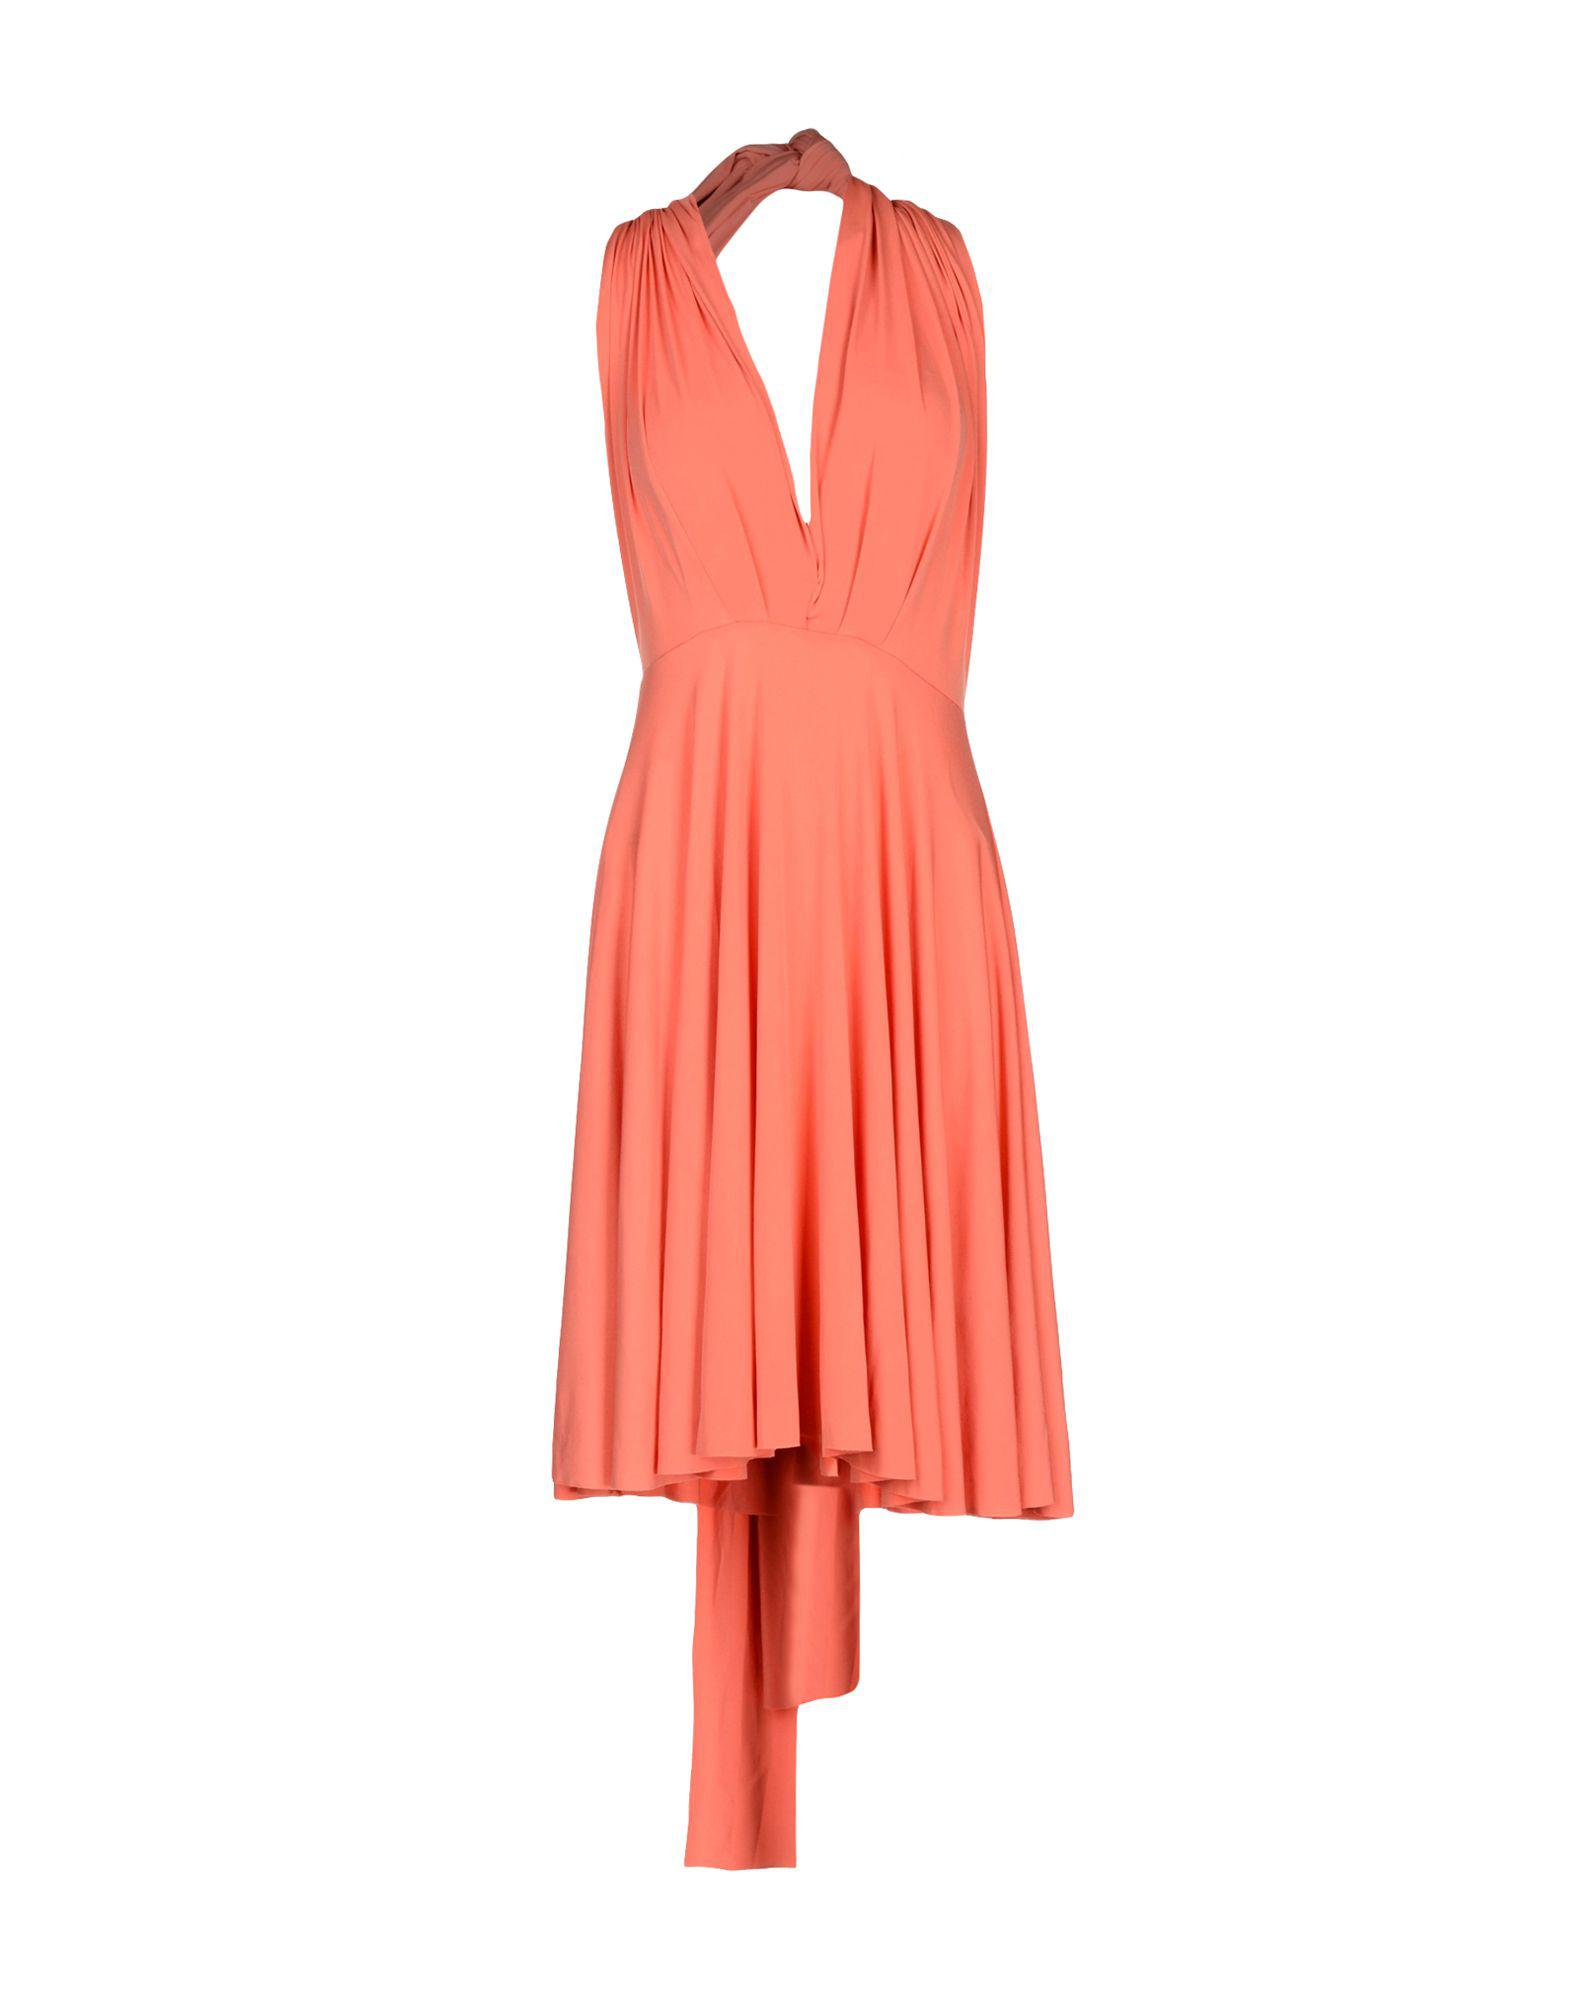 097061bca7 Lyst - Von Vonni Short Dress in Orange